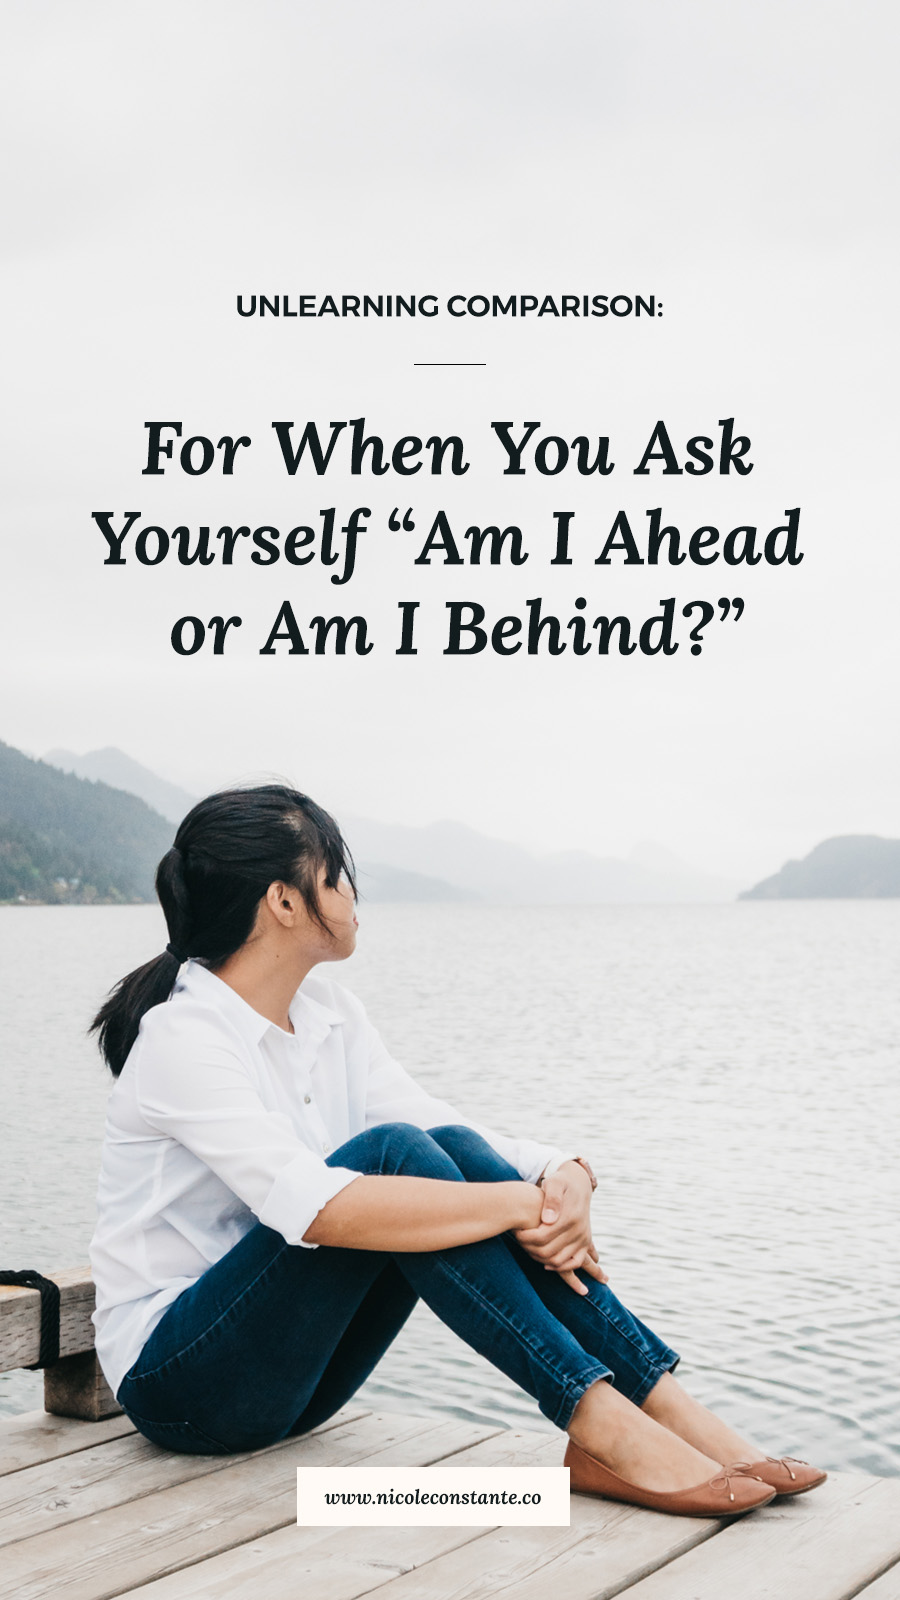 For When You Start Asking: Am I ahead Or Am I behind? | Unlearning Comparison